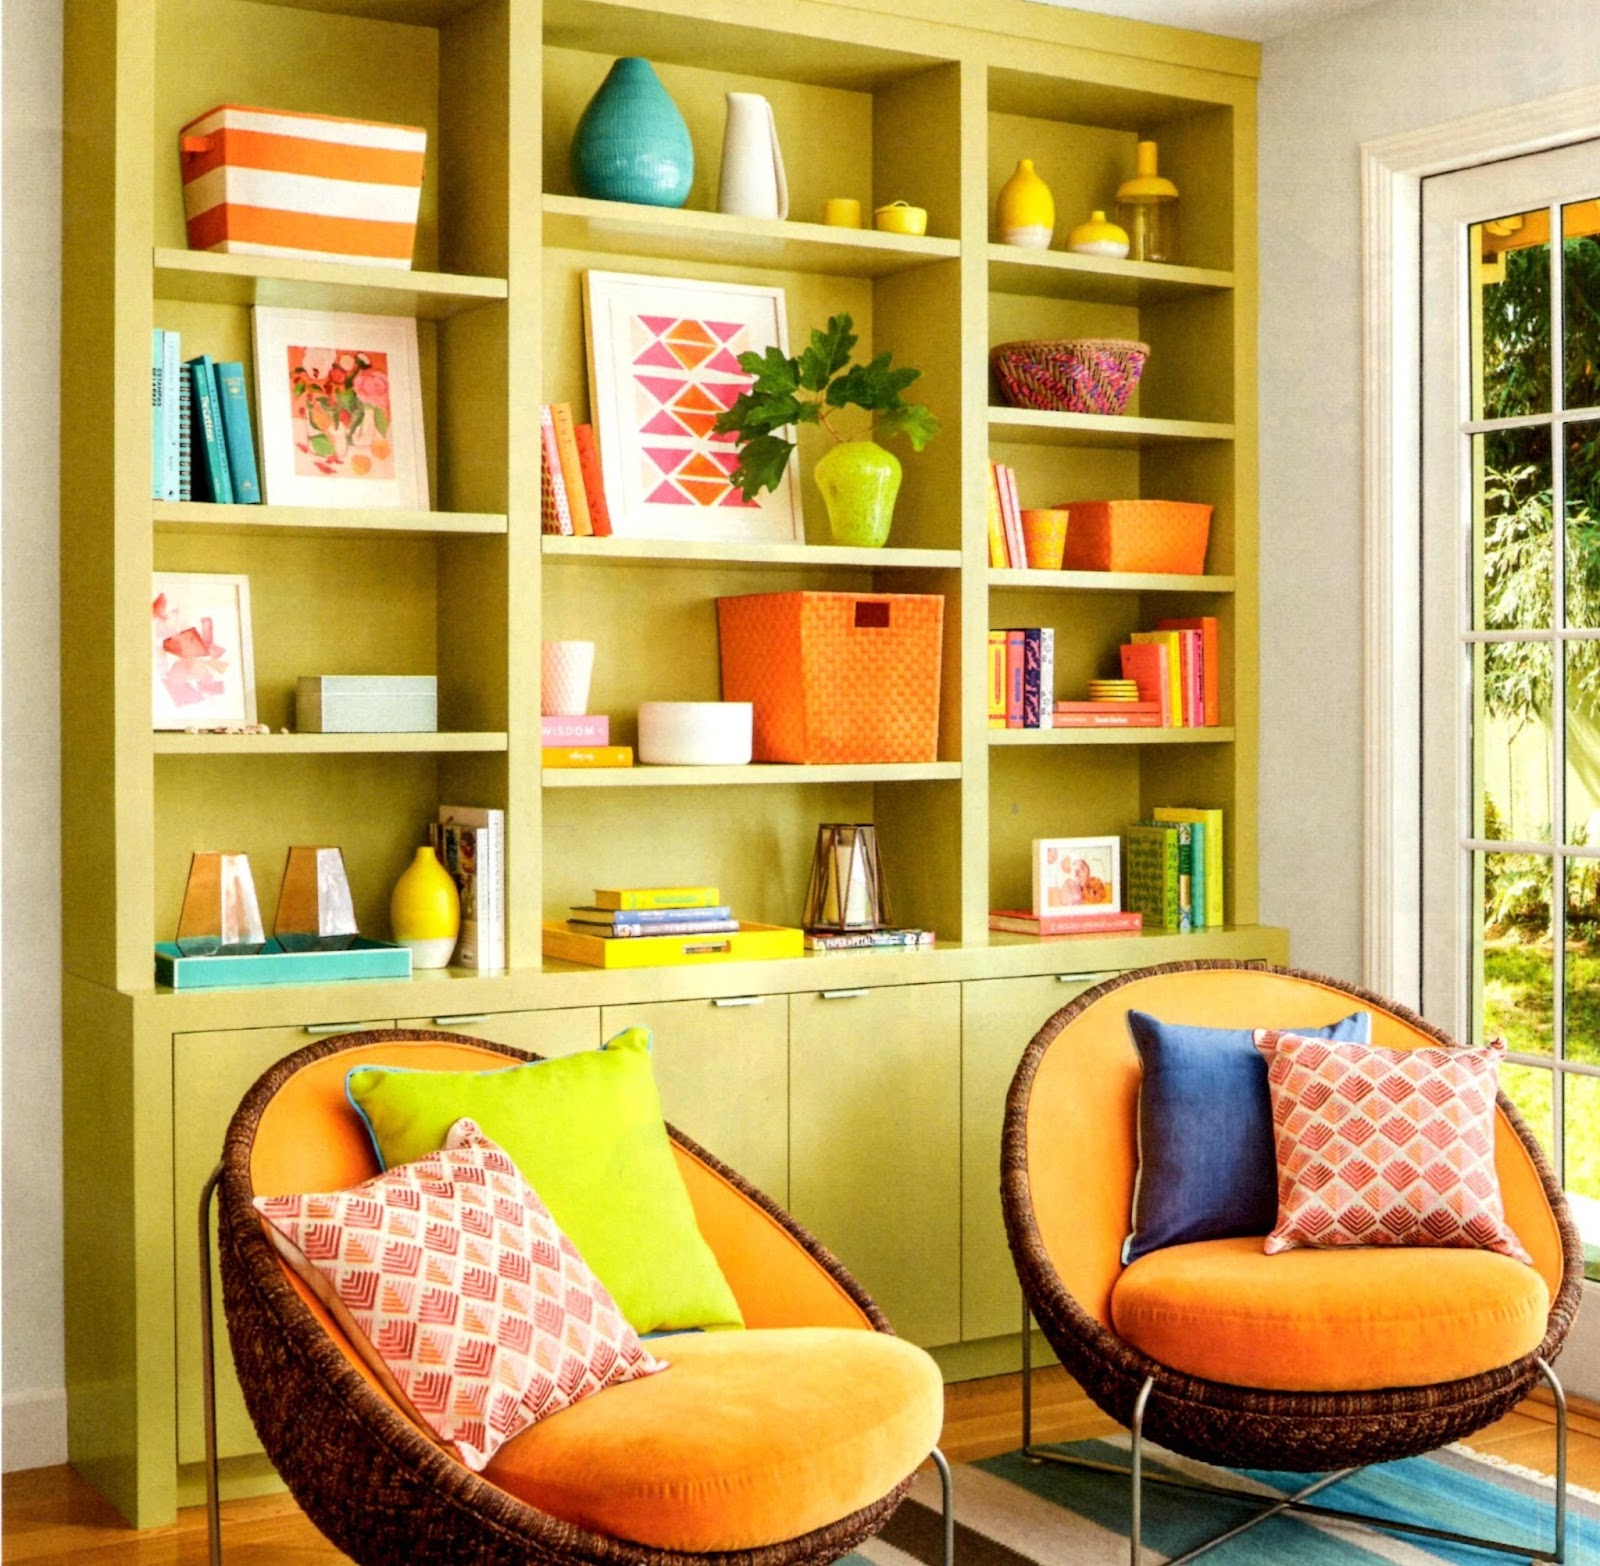 Need a Mood lift? Opt for Boho Happy Colors, Like This Homeowner Did ...